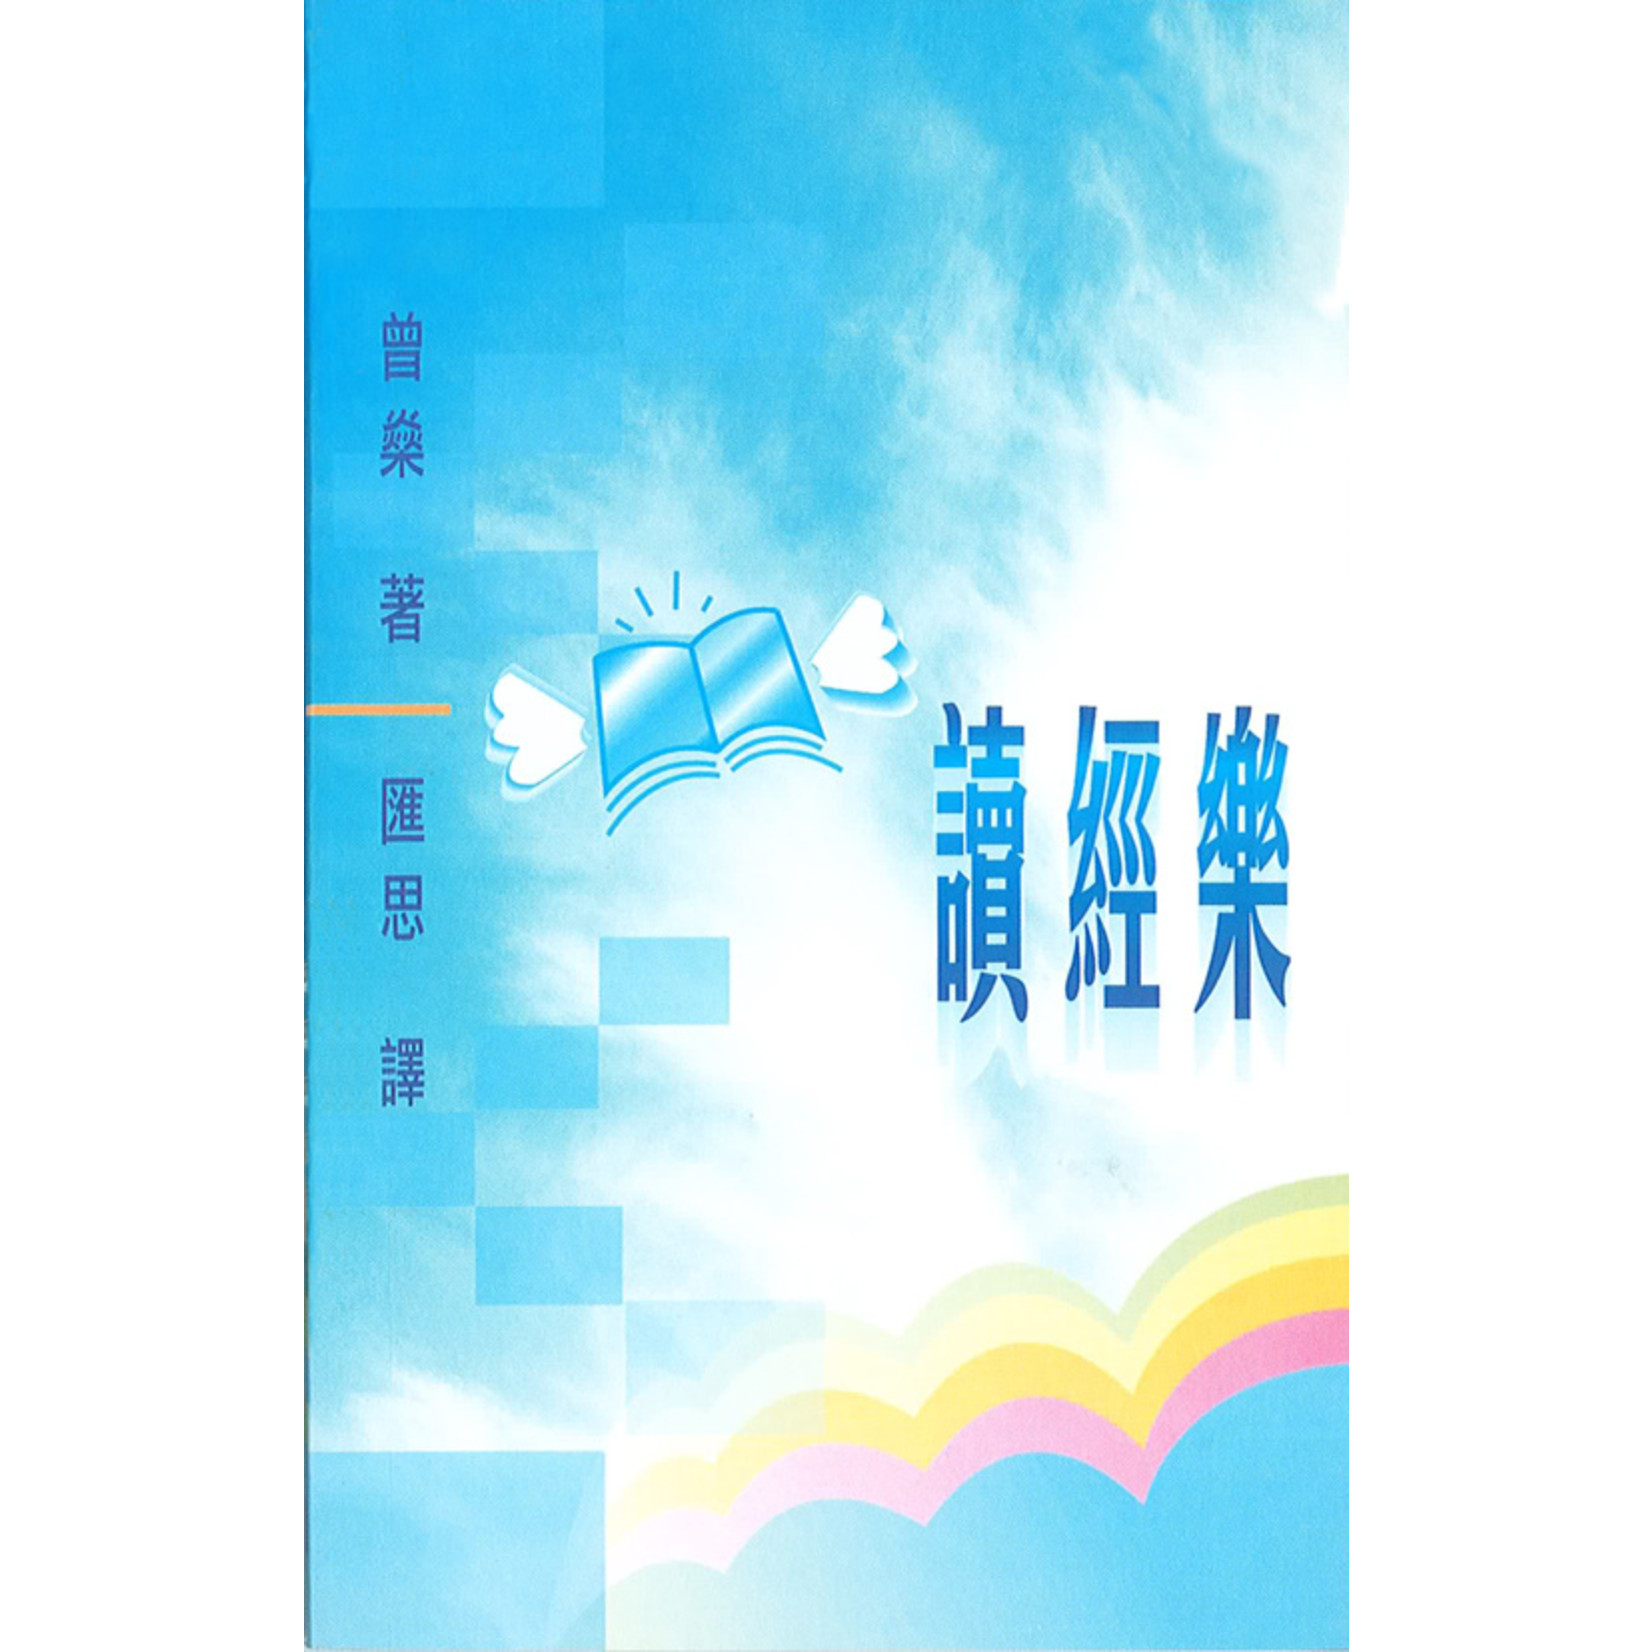 天道書樓 Tien Dao Publishing House 讀經樂 Enjoy Your Bible